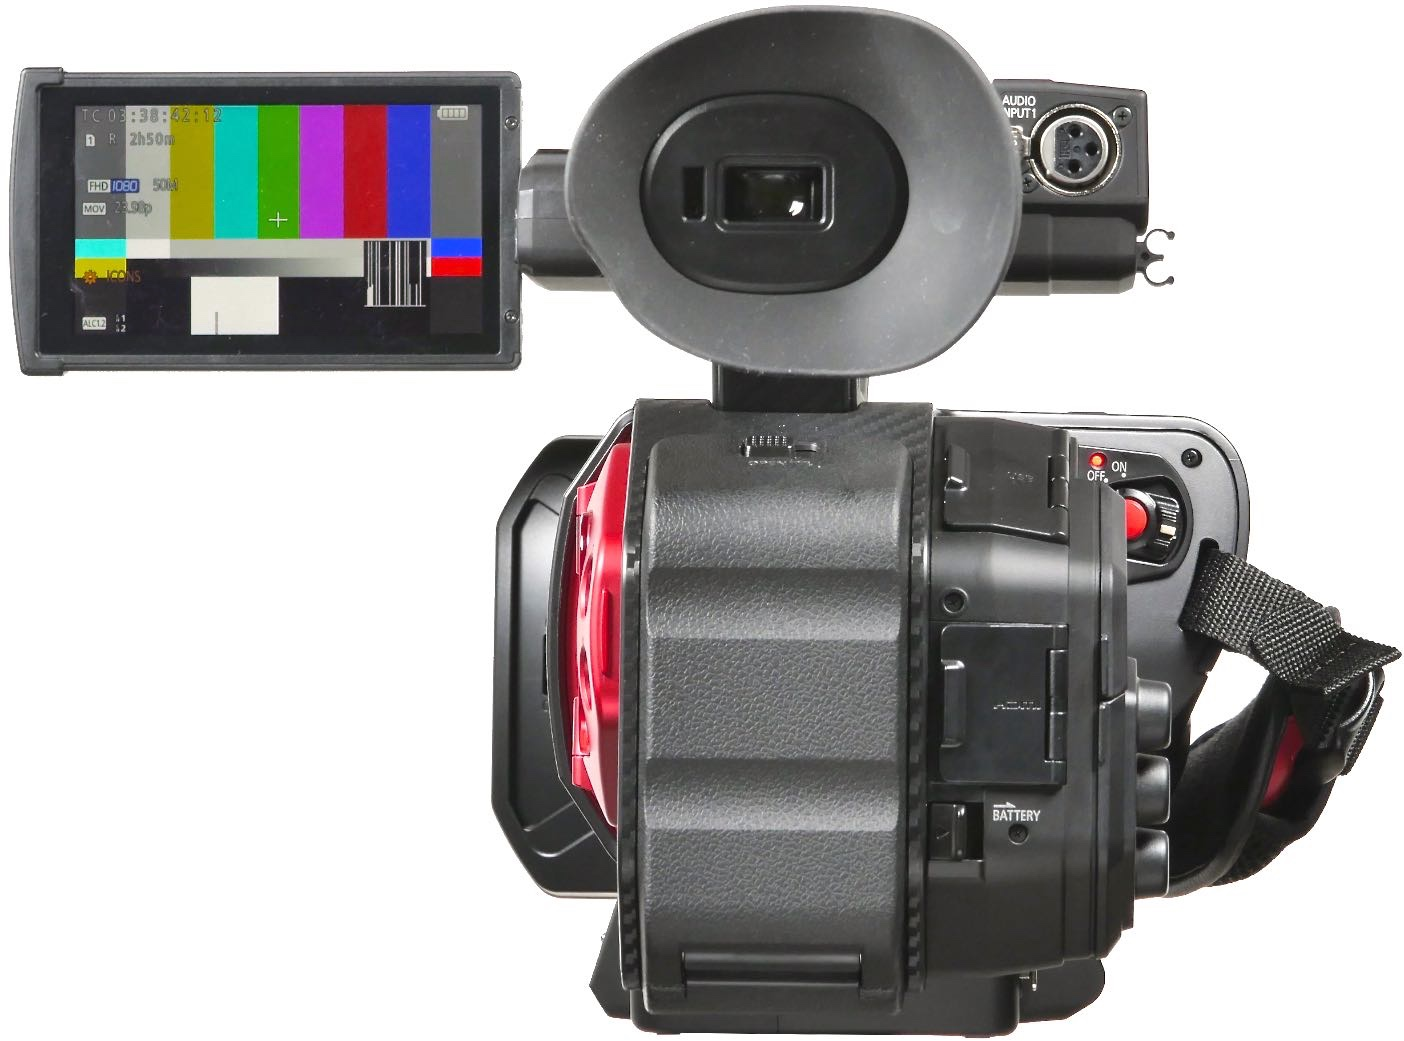 Review Panasonic Ag Dvx200 4 3 Sd To 4k Fixed Lens Camcorder Video Camera Diagram Labeled Chapter The Back Of Is A Hinged Door Over Battery Compartment Evf Can Be Flipped Up Out Way So You Hold